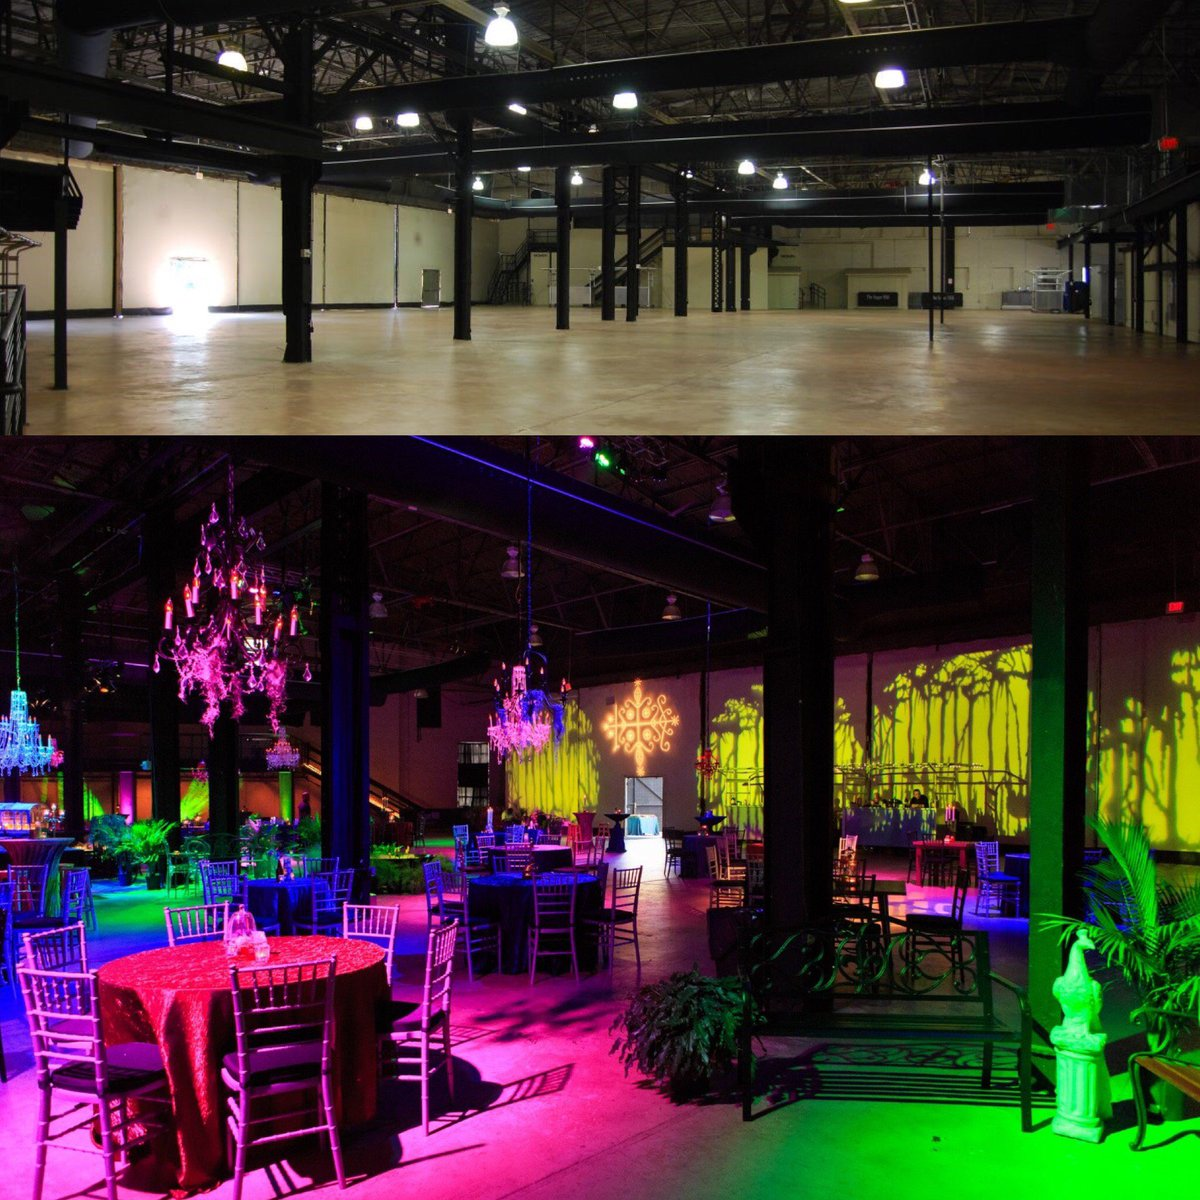 test Twitter Media - Check out these Before/After pics from a Voodoo themed reception at the Sugar Mill Thanks @gkphotography1 for the excellent pics! #transformationtuesday #tuesday #bbcnola #eventprofs #designbyjeanne #voodoo #jewelcolors https://t.co/iqztNI6Euq